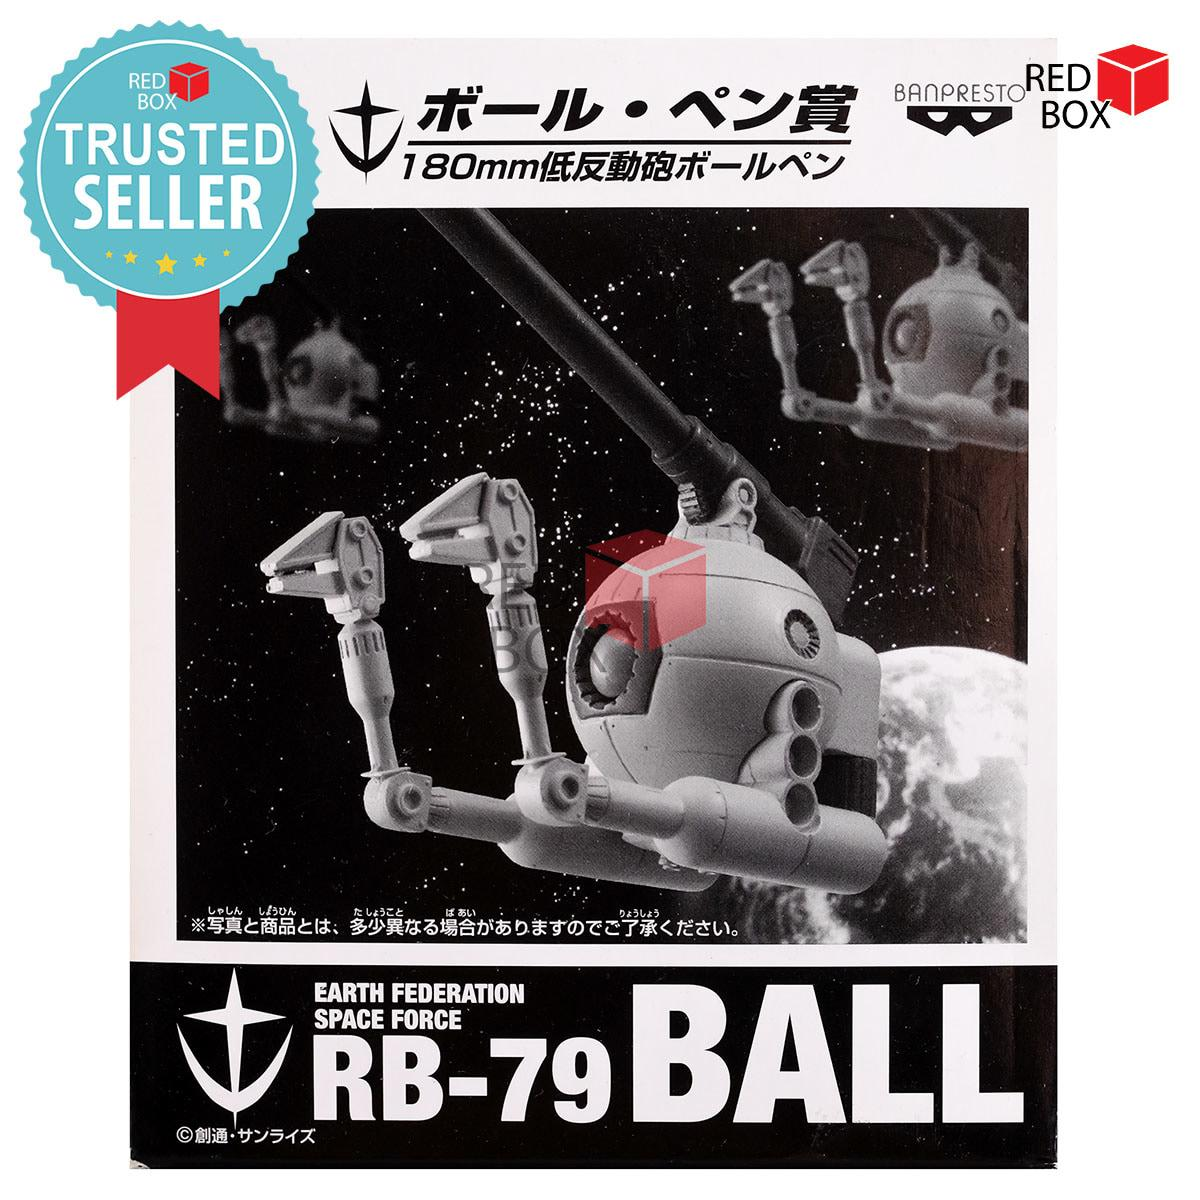 Termurah Mainan Koleksi Banpresto Ball Pen Black - Ichiban Kuji Mobile Suit Gundam Anime Cartoon